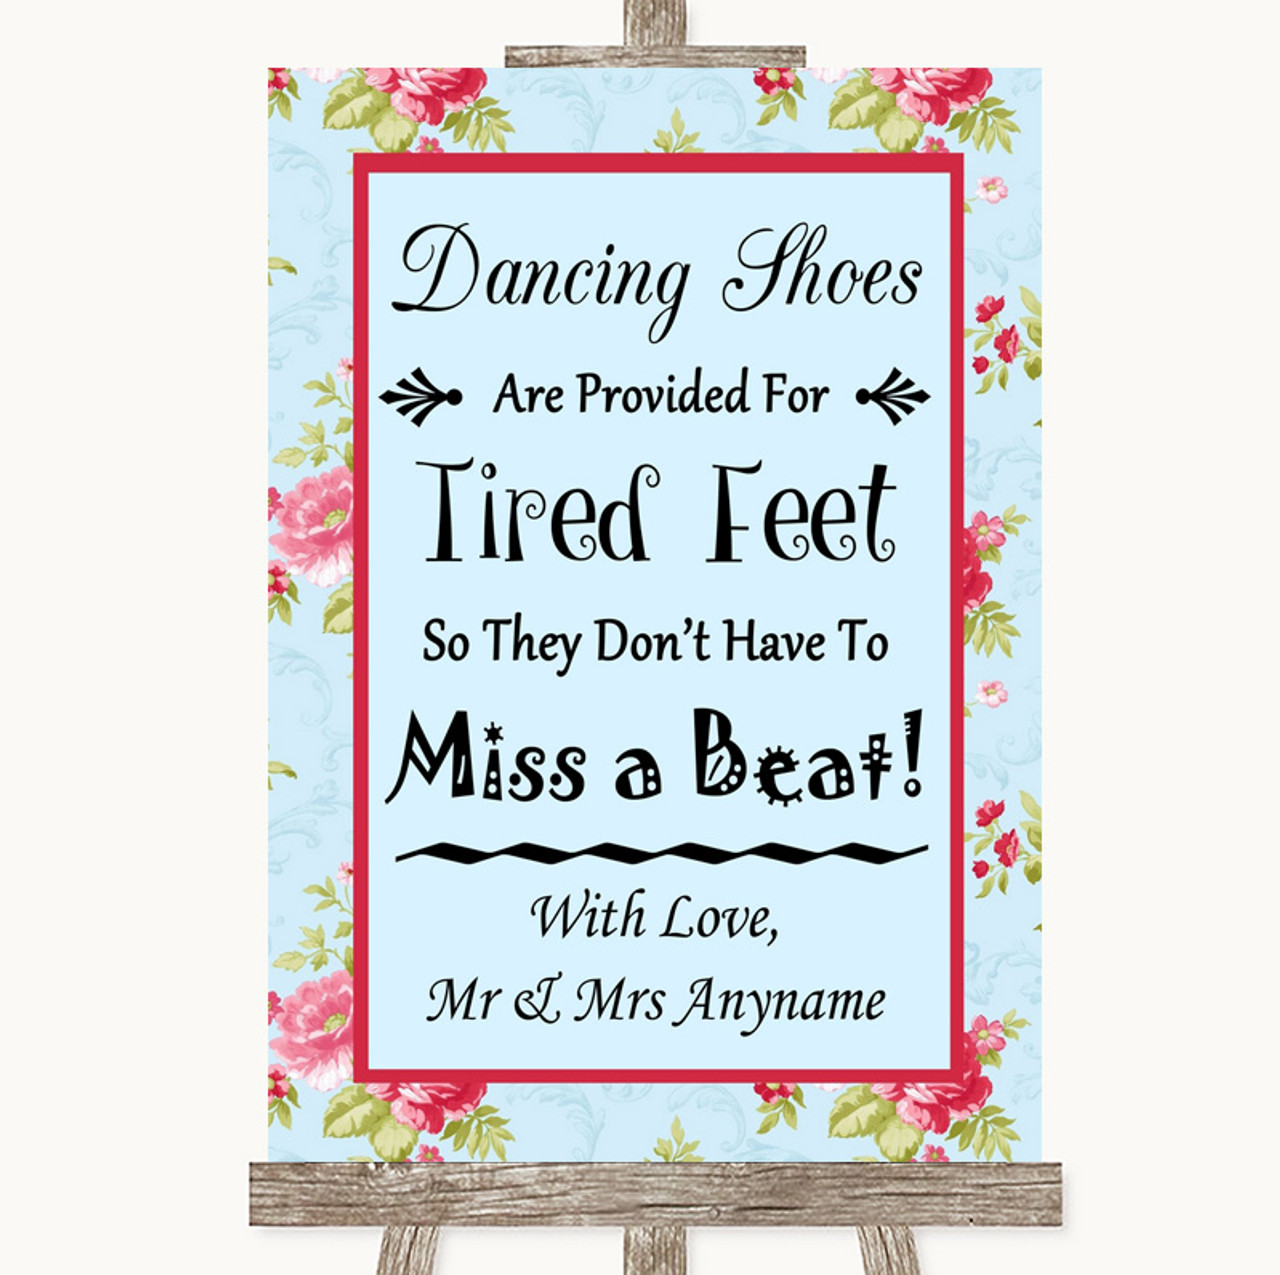 85e09bae9 Shabby Chic Floral Dancing Shoes Flip-Flop Tired Feet Personalised Wedding  Sign - The Card Zoo